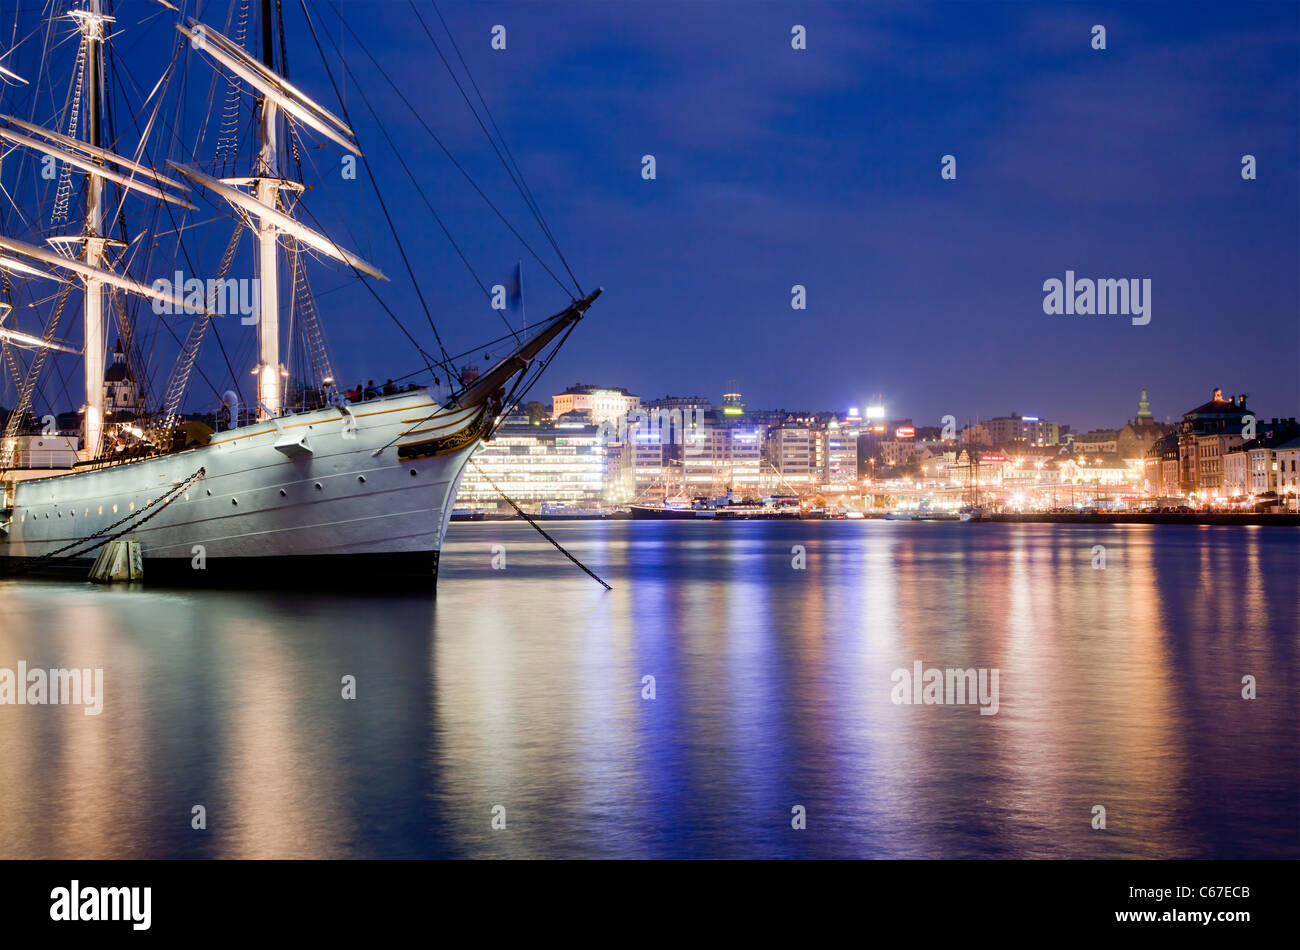 Ship at night the the bay in Stockholm, Sweden. - Stock Image